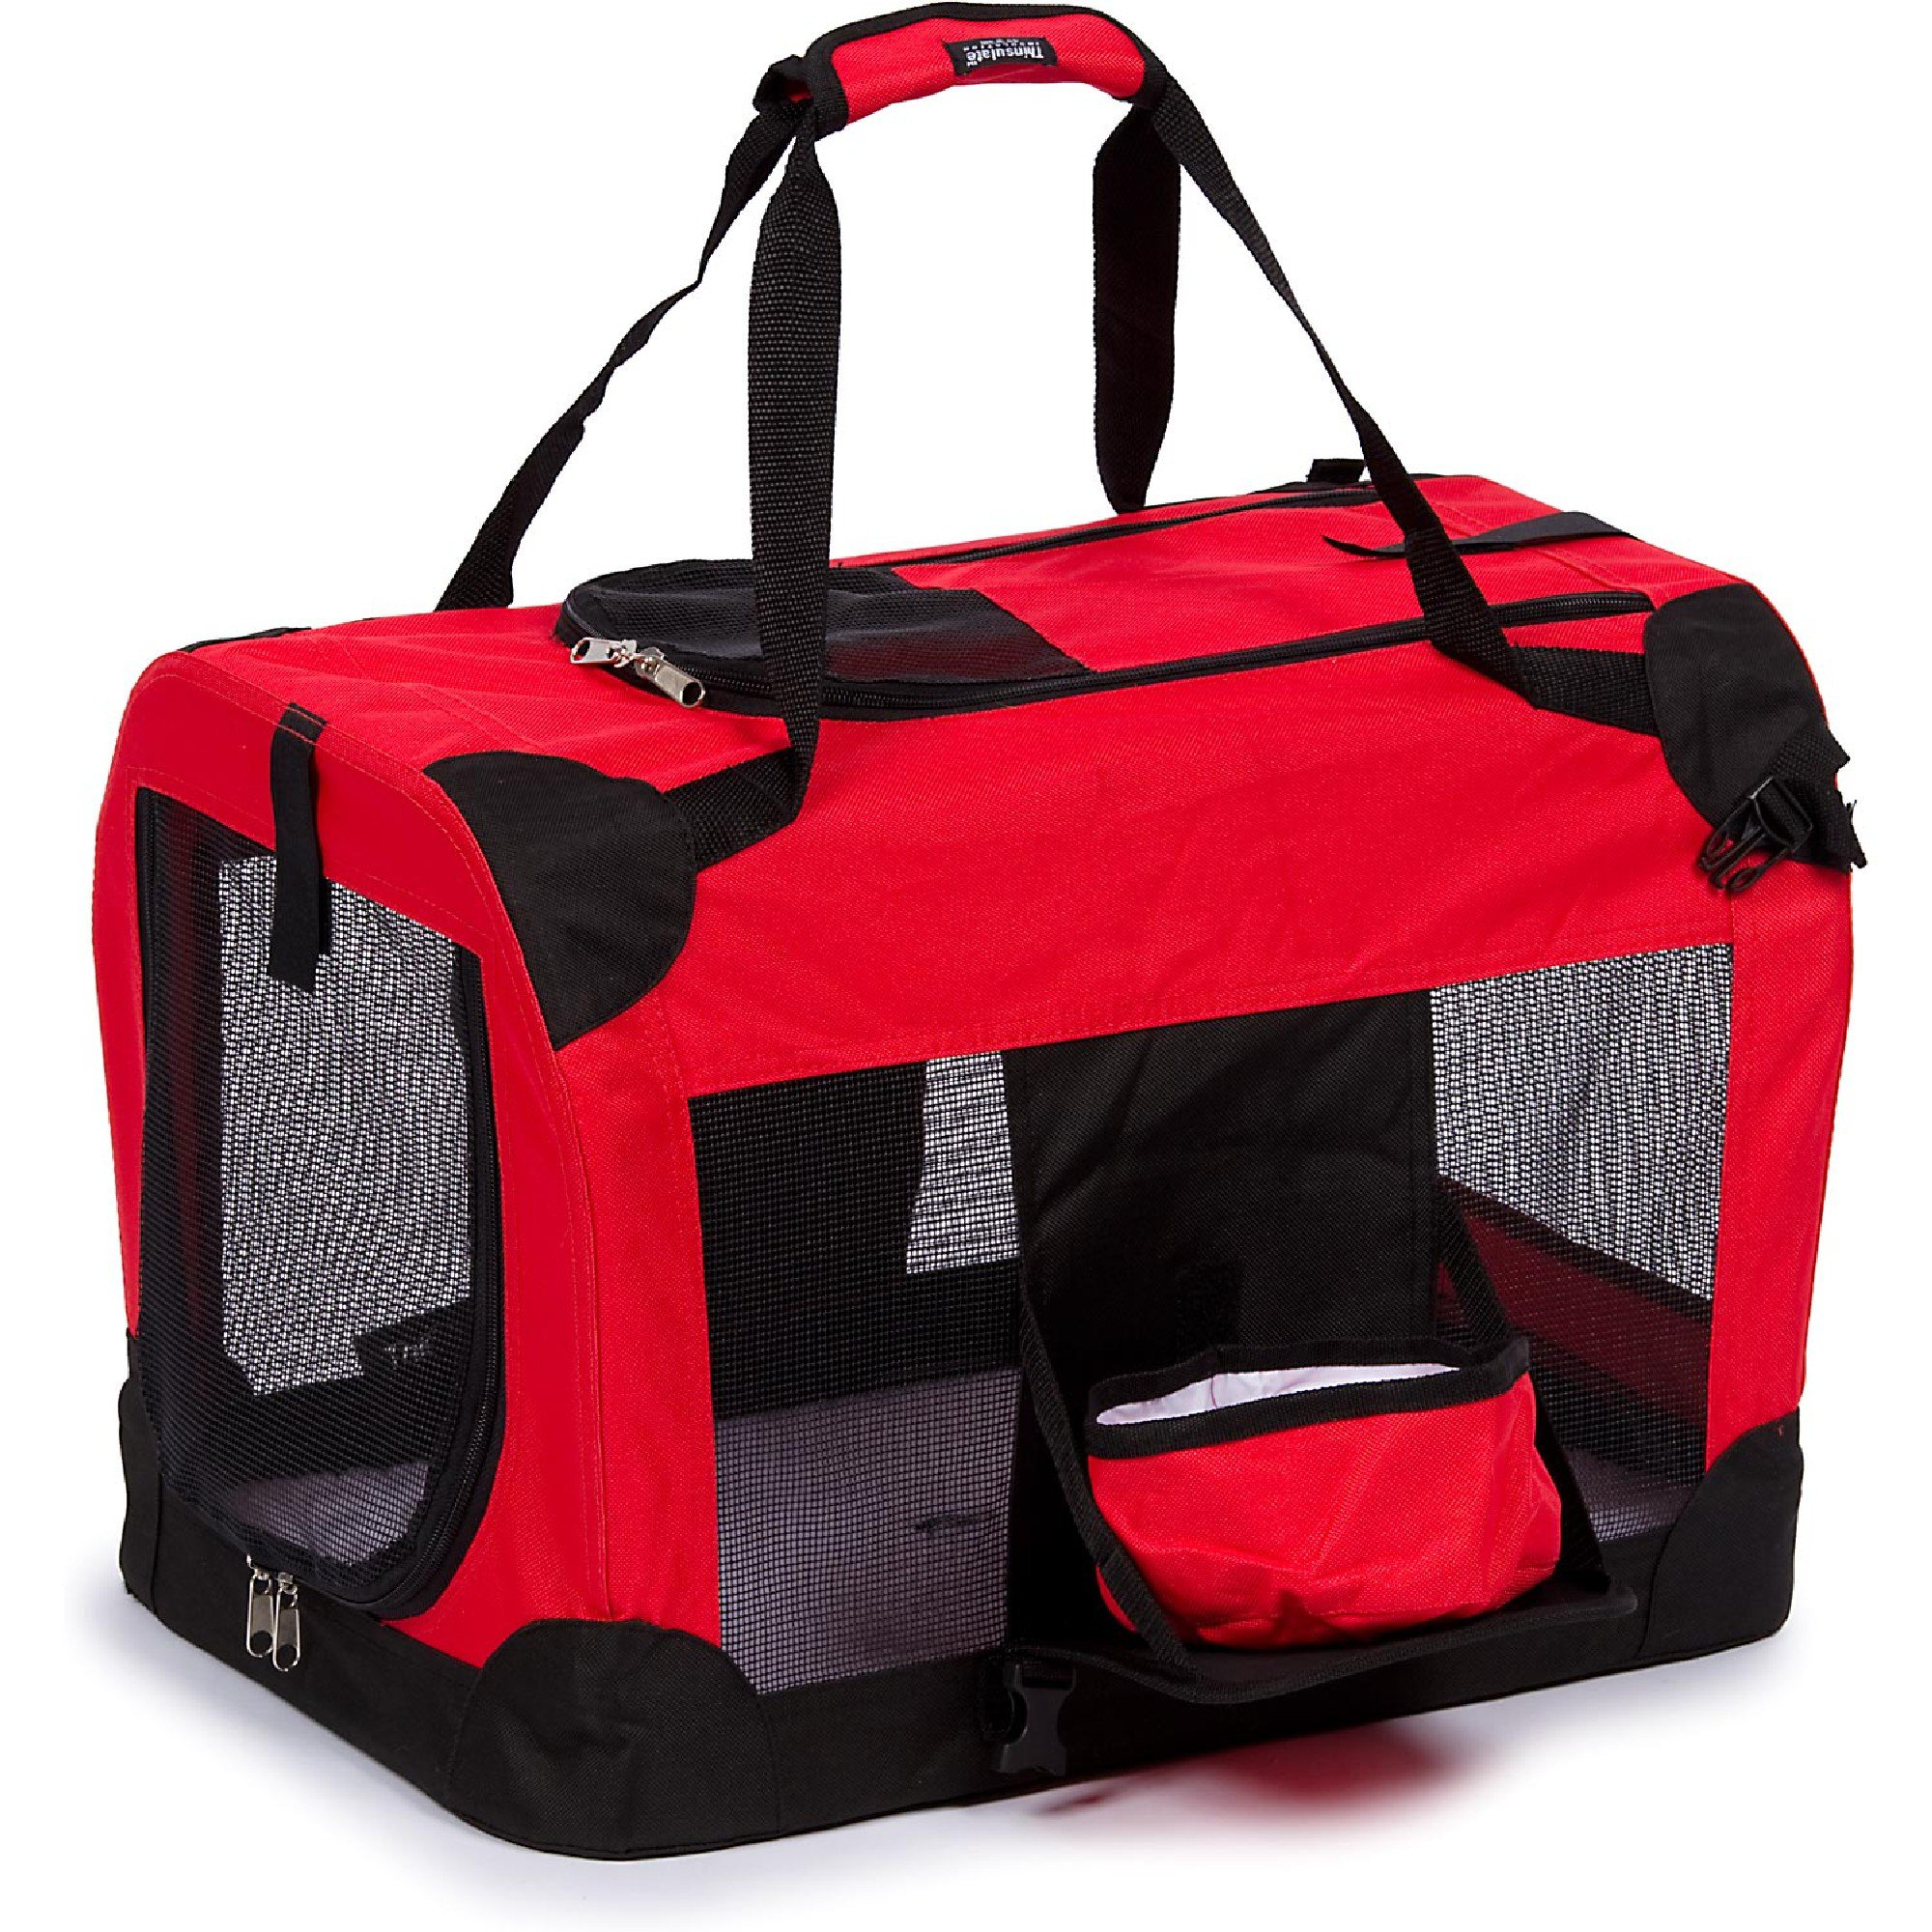 Pet Life Folding Deluxe 360 Degree Vista View House Pet Crate In Red, X Small